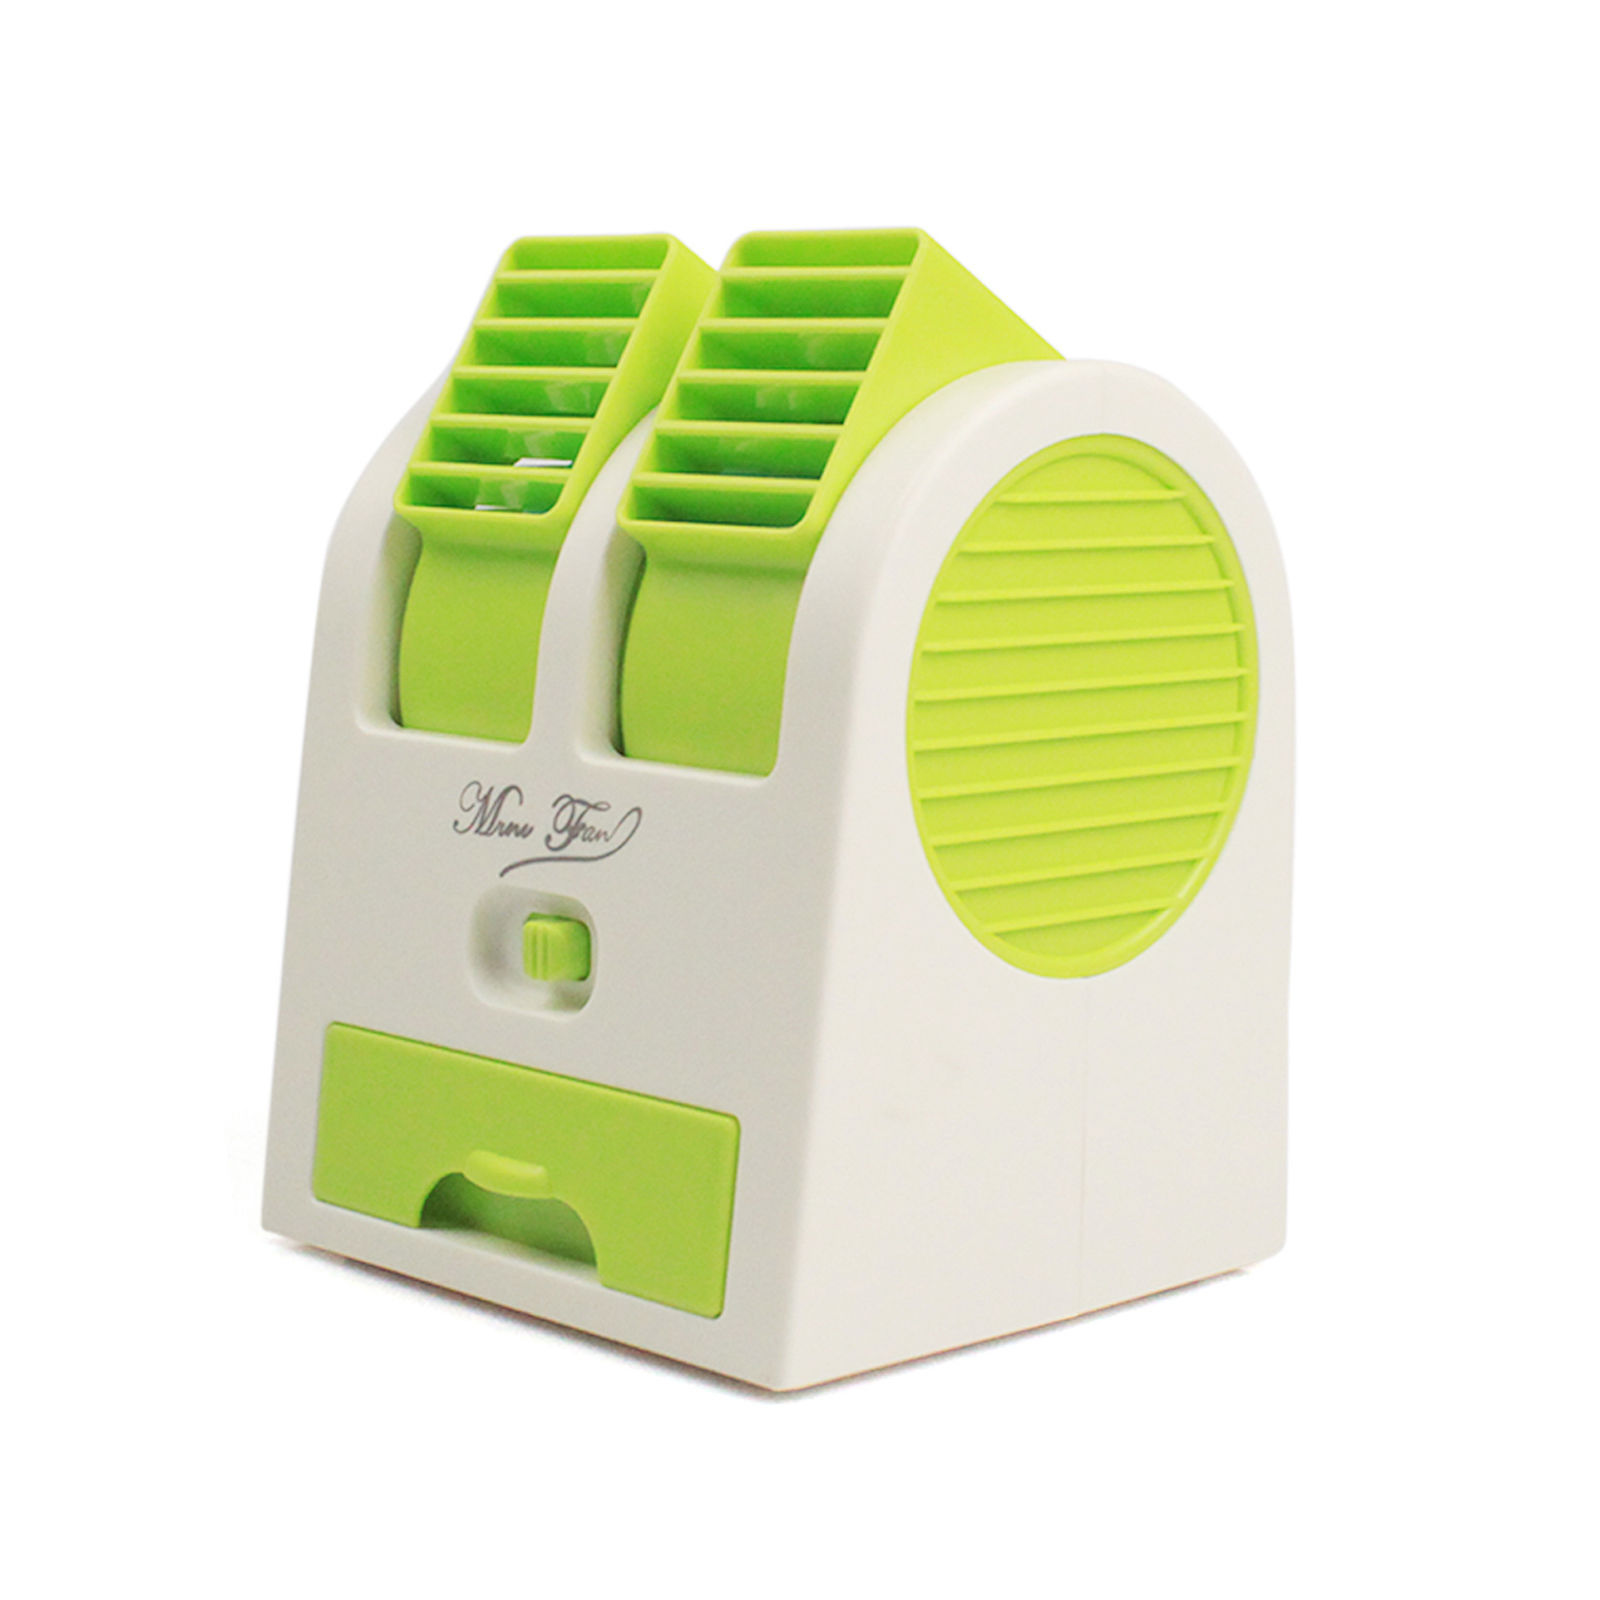 #4DB019 Handy Mini Small Fan Portable Office Desktop Dual  2017 13462 Portable Air Conditioner For Office photo with 1600x1600 px on helpvideos.info - Air Conditioners, Air Coolers and more